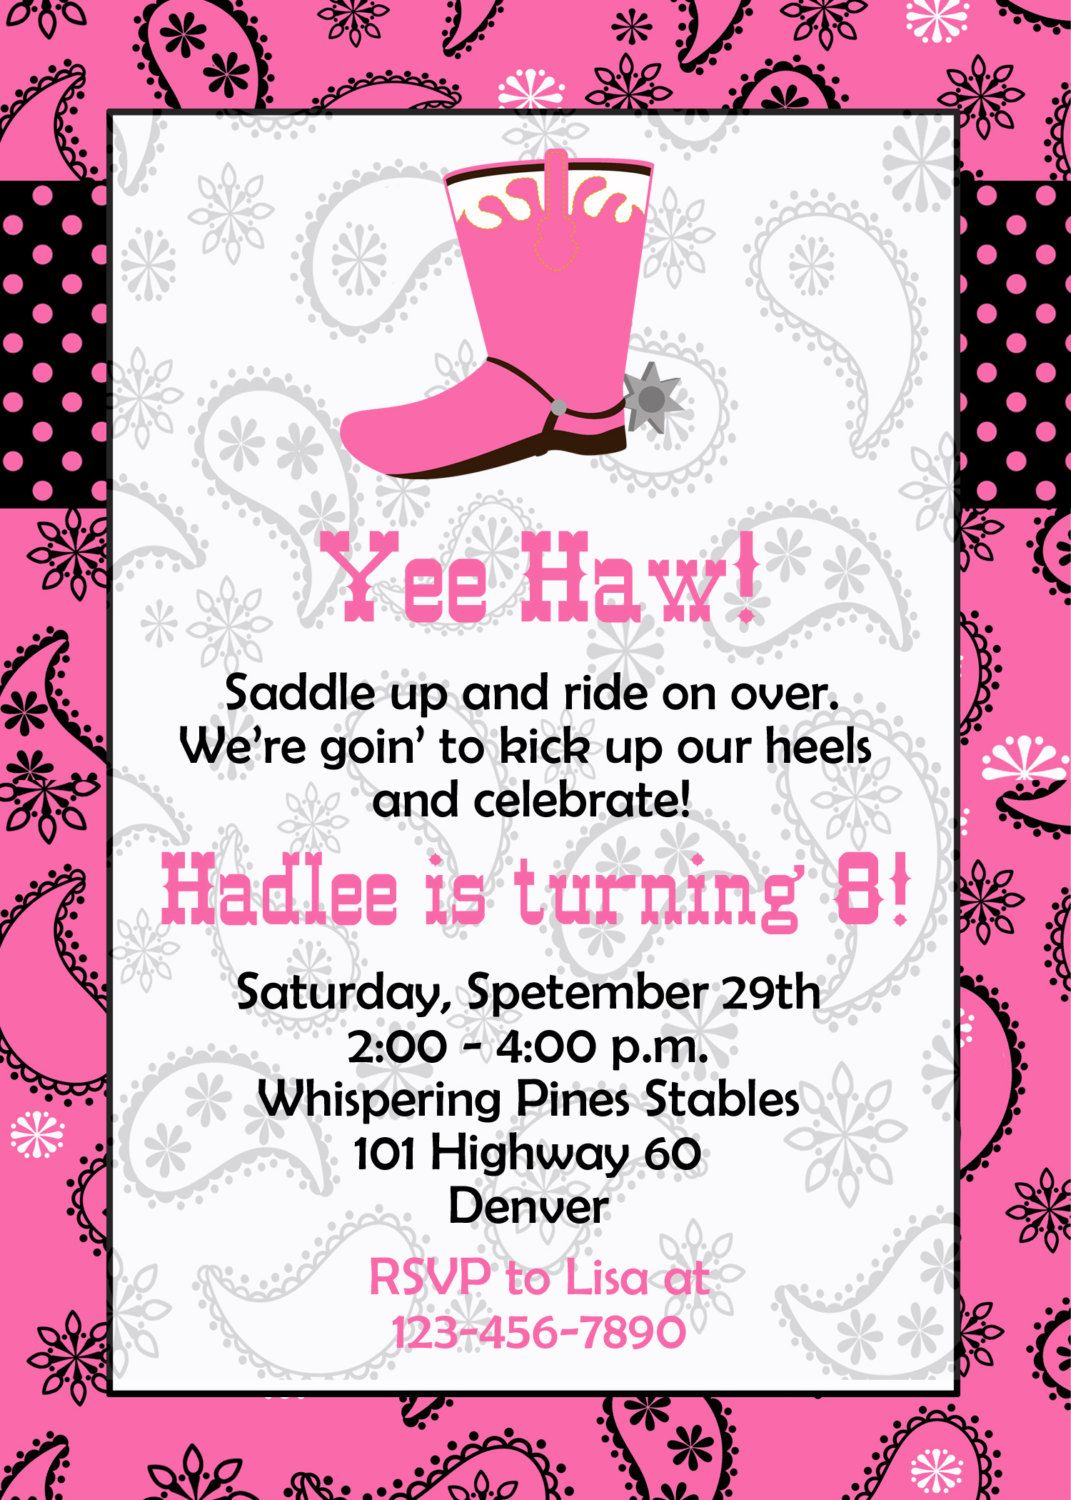 Horseback riding birthday party invitation - cowgirl birthday party ...